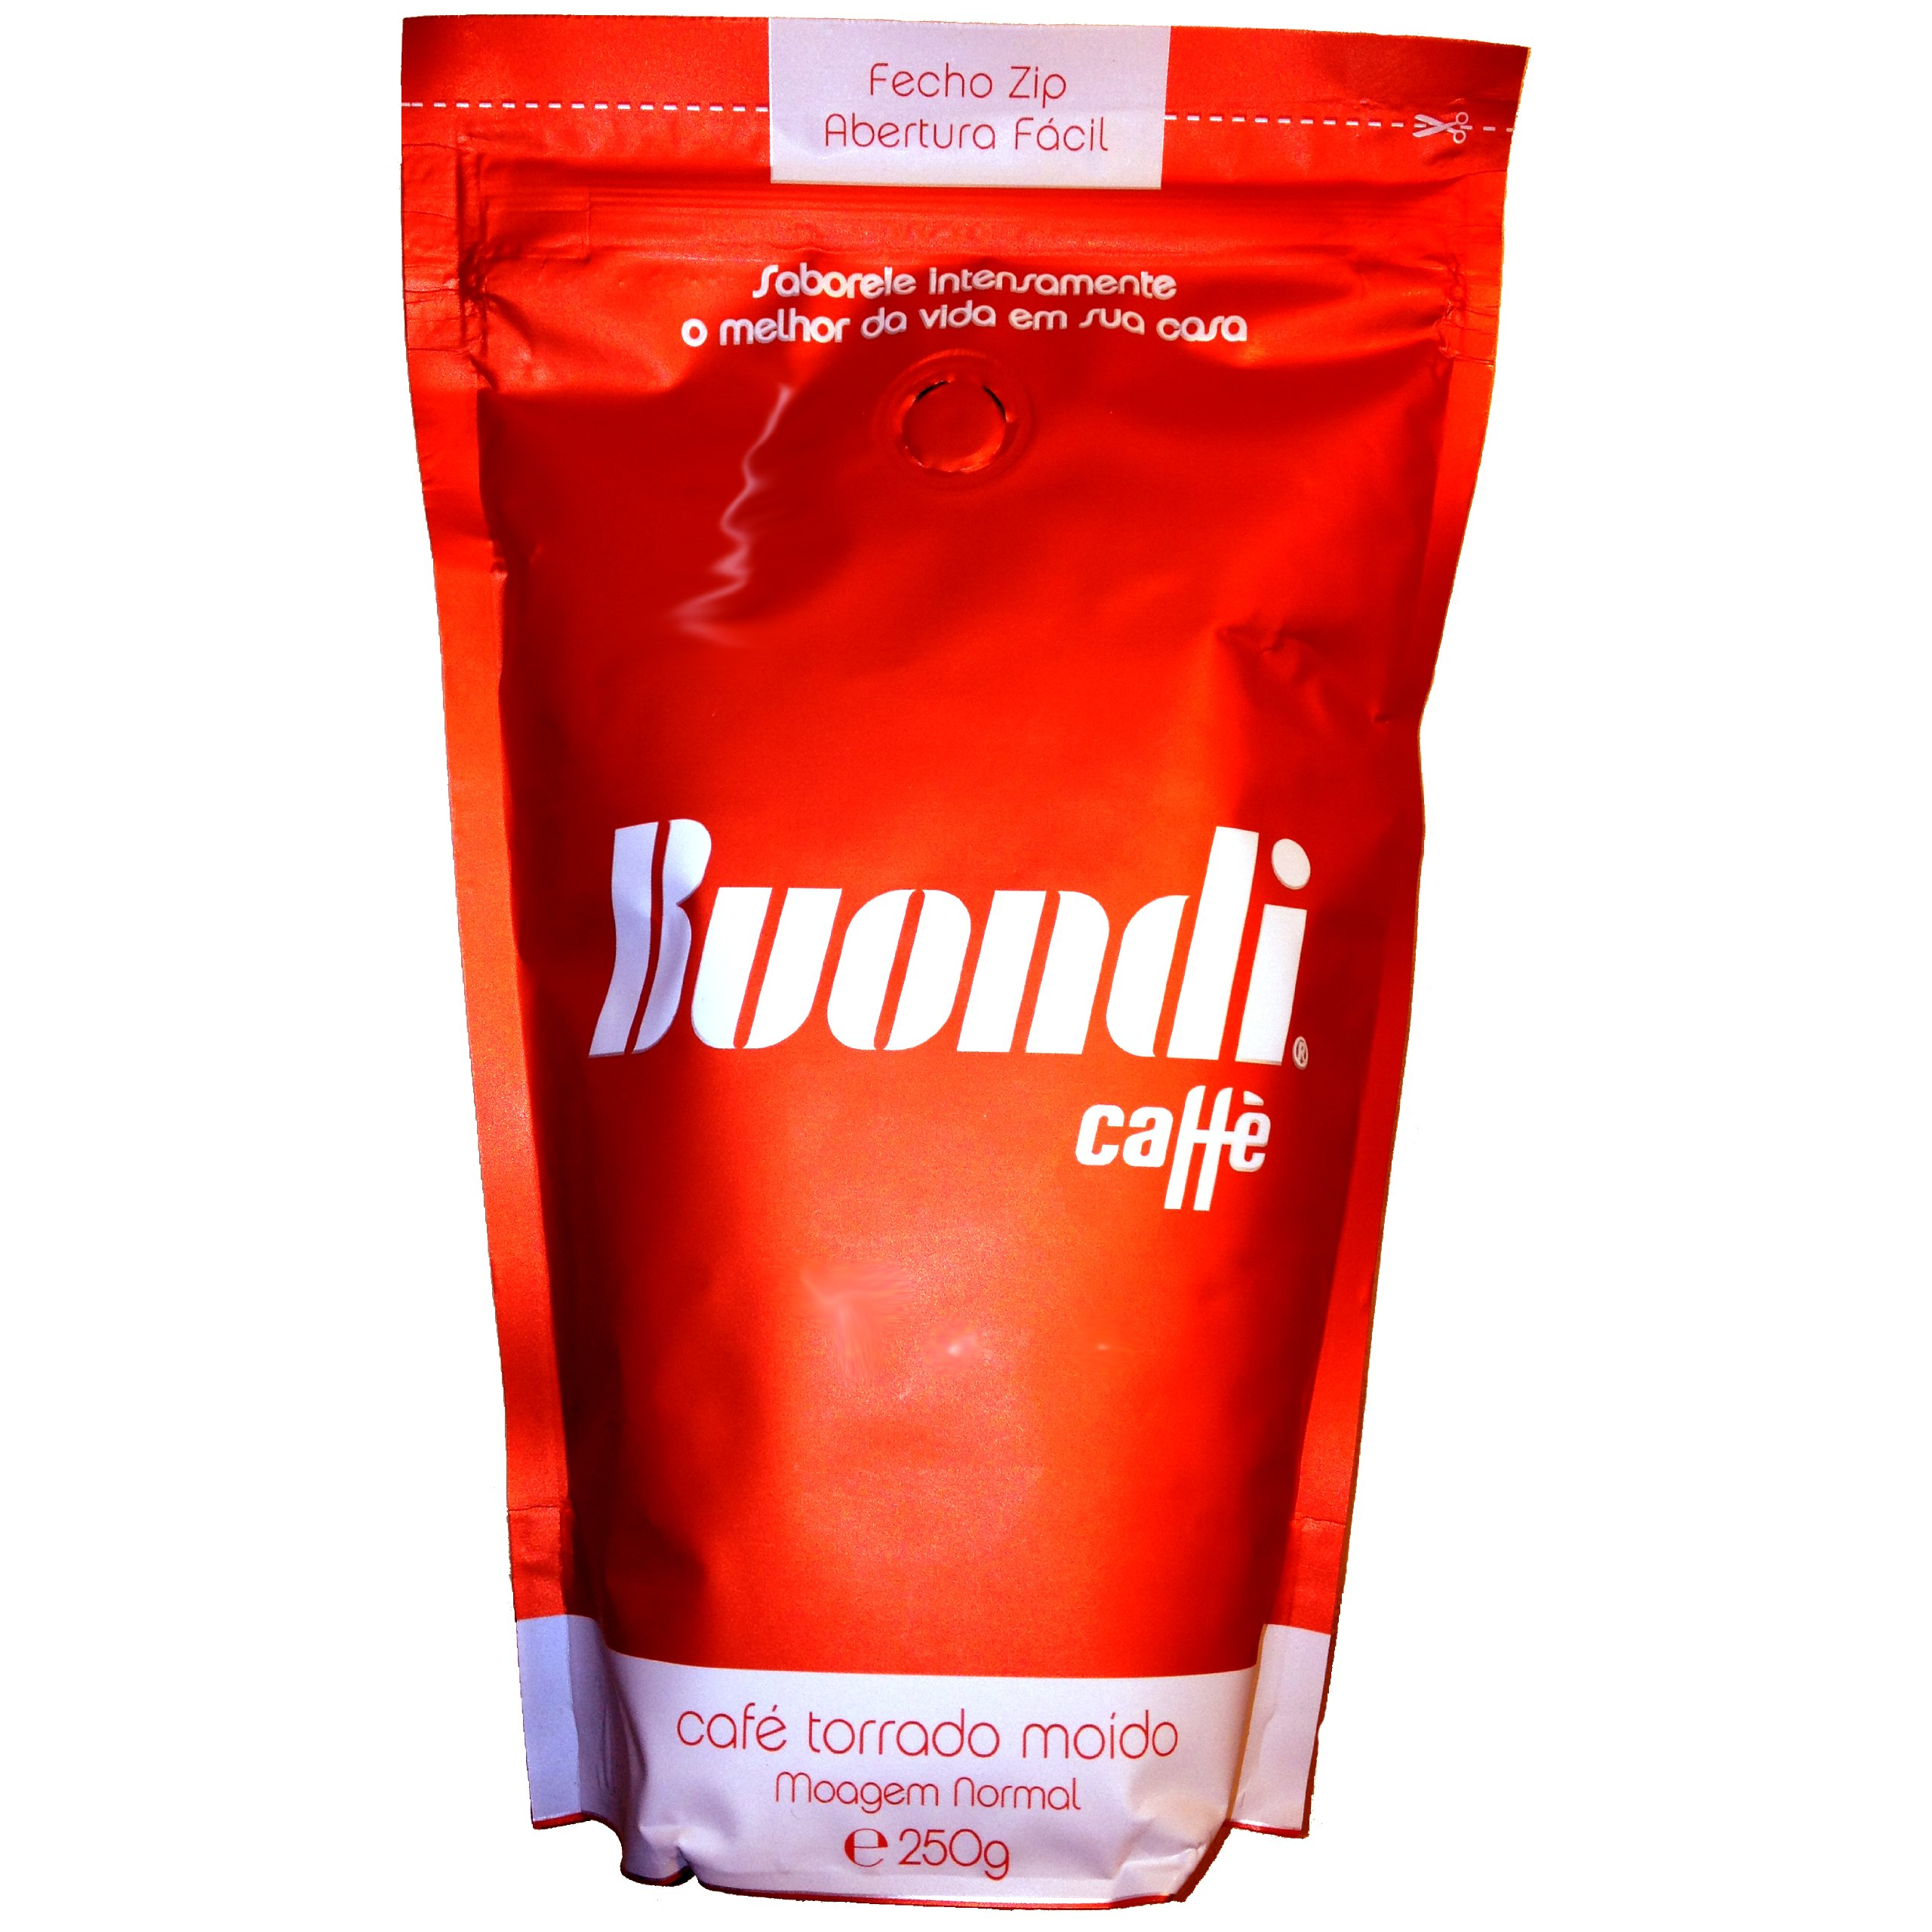 Amazon.com : Buondi Roasted Ground Portuguese Coffee 250g : Coffee Substitutes : Grocery & Gourmet Food